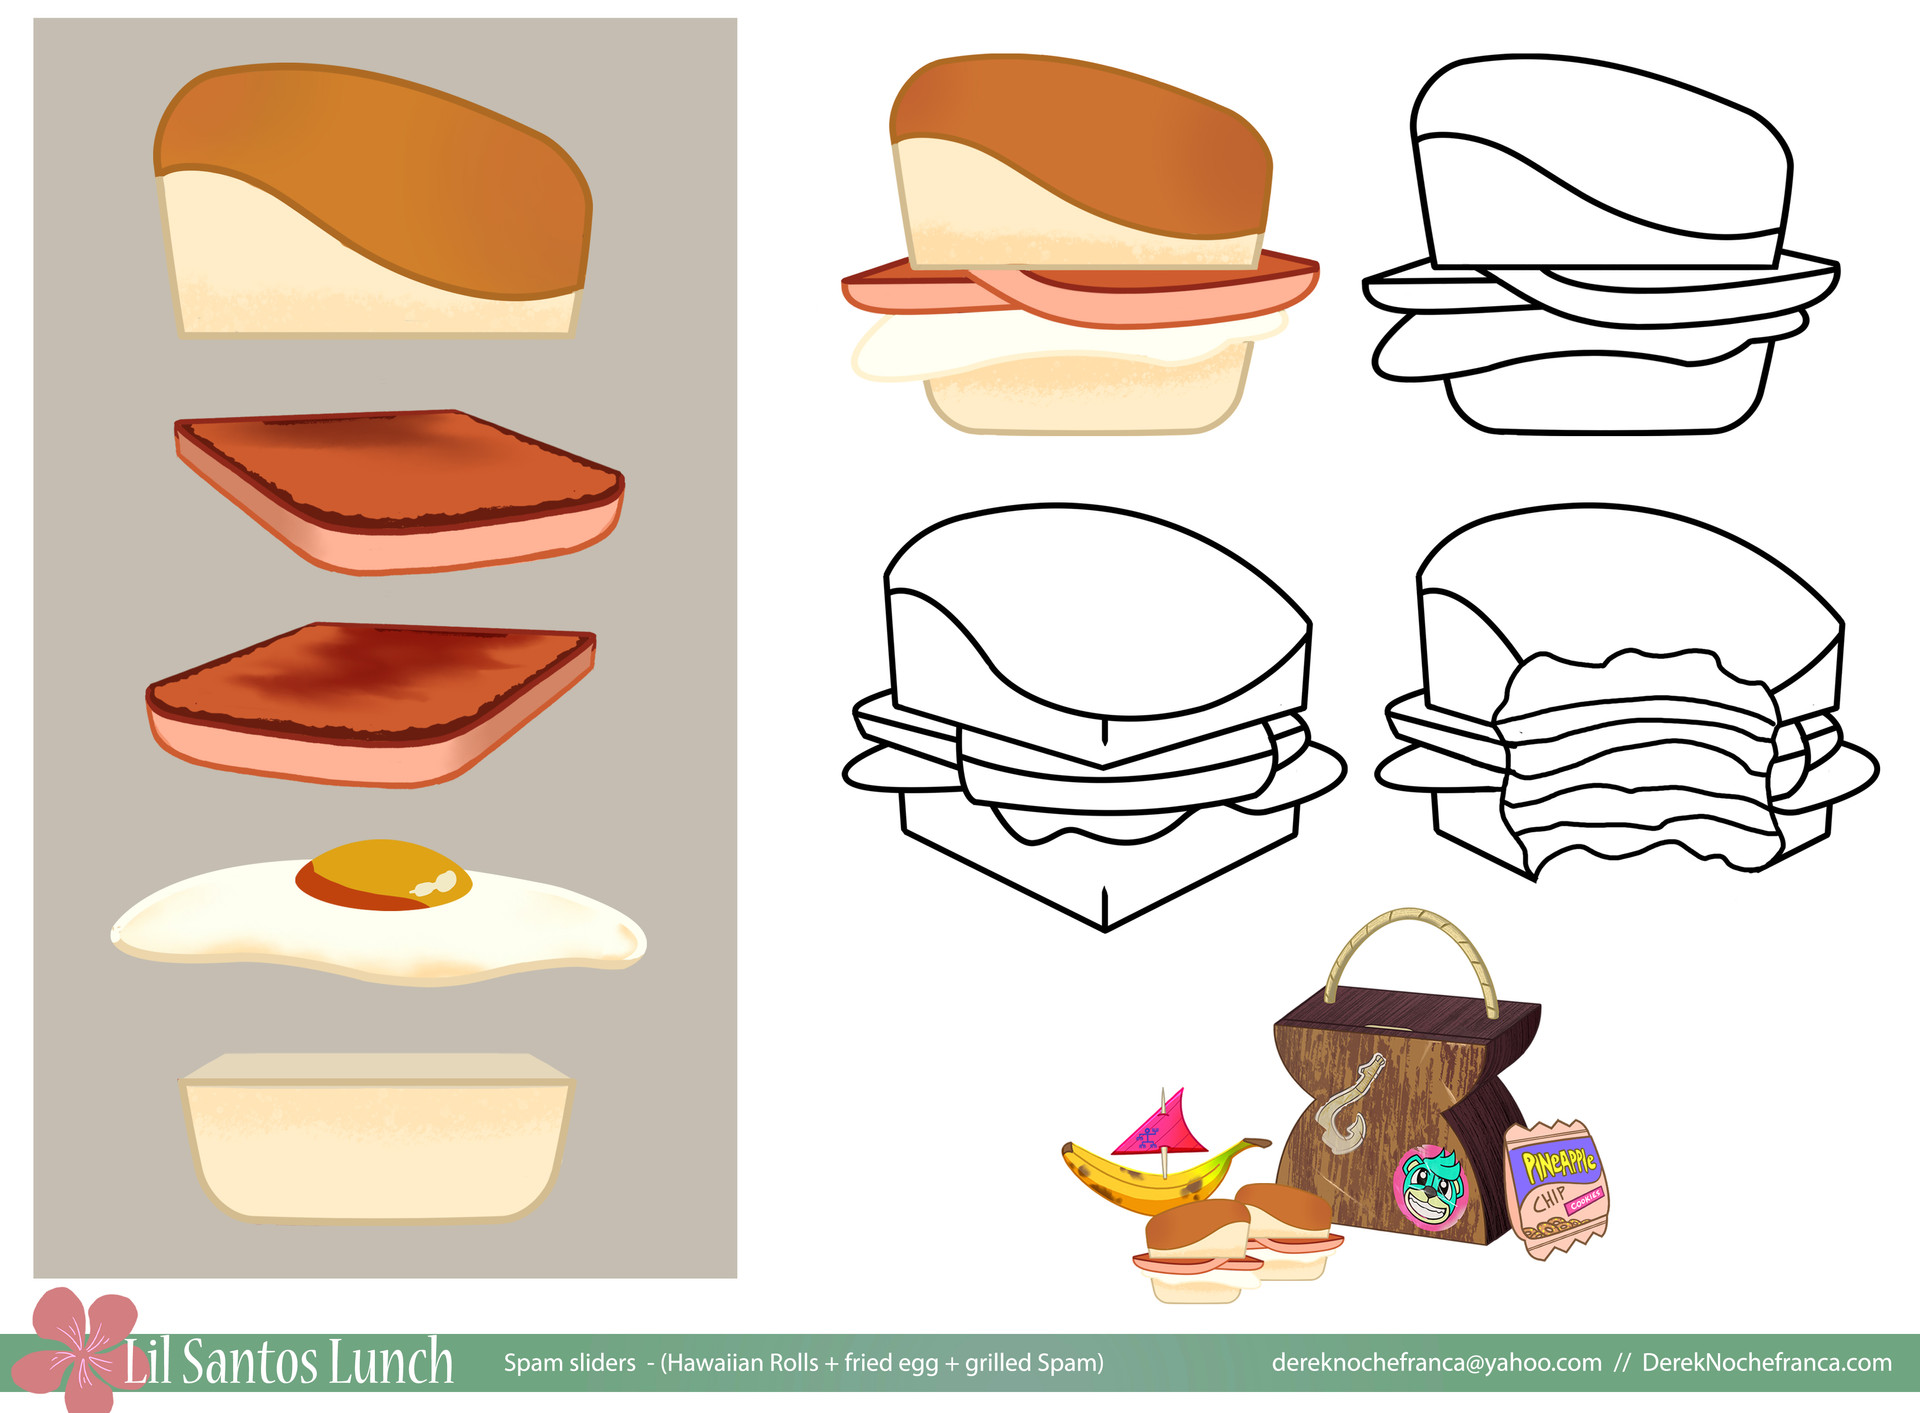 LunchBox-sandwhich-FINAL.jpg